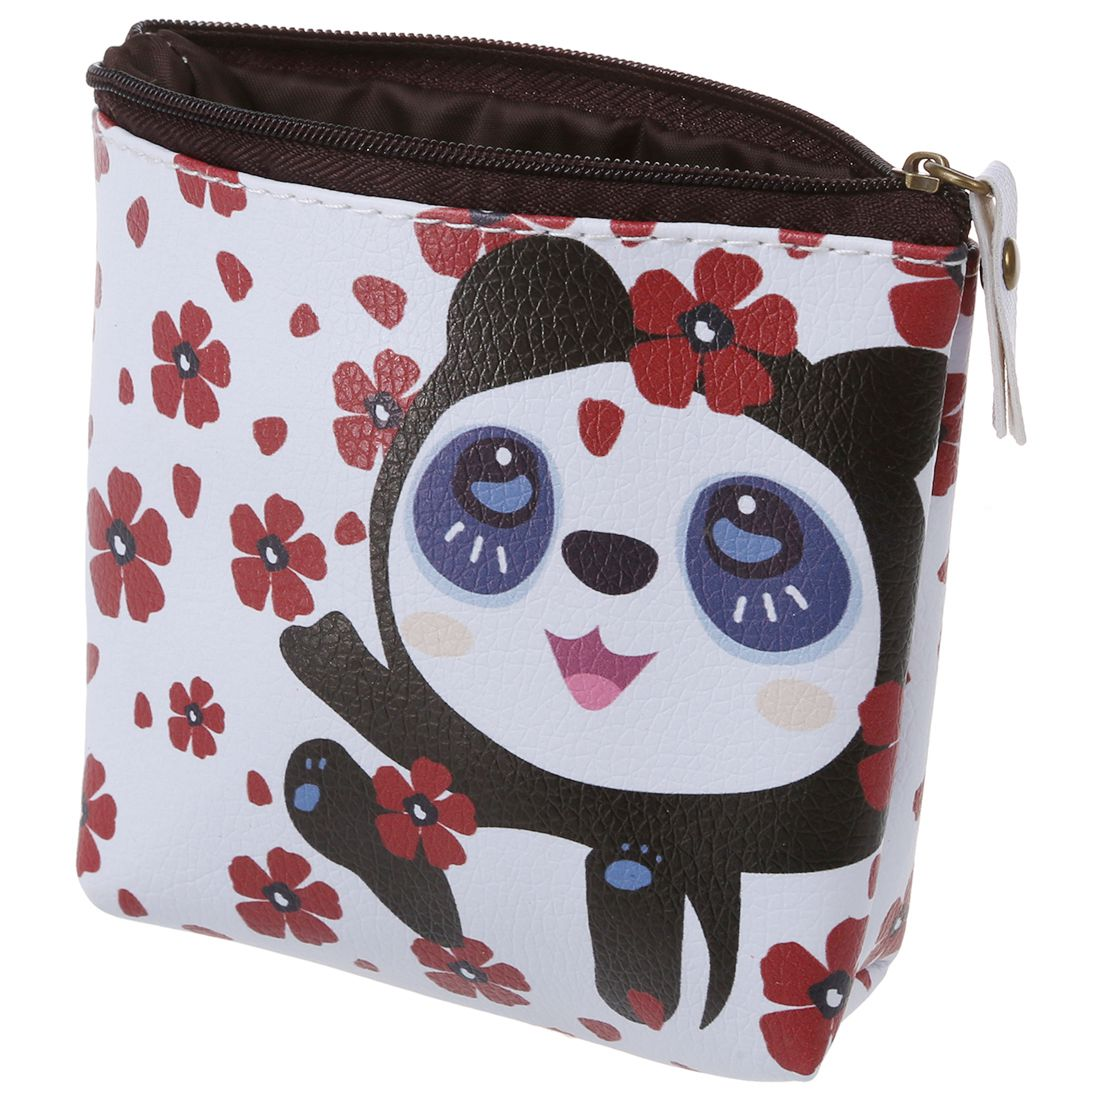 Women Girls Cute Zip Leather Coin Purse Wallet Bag Change Pouch Key Card Holder #17 White